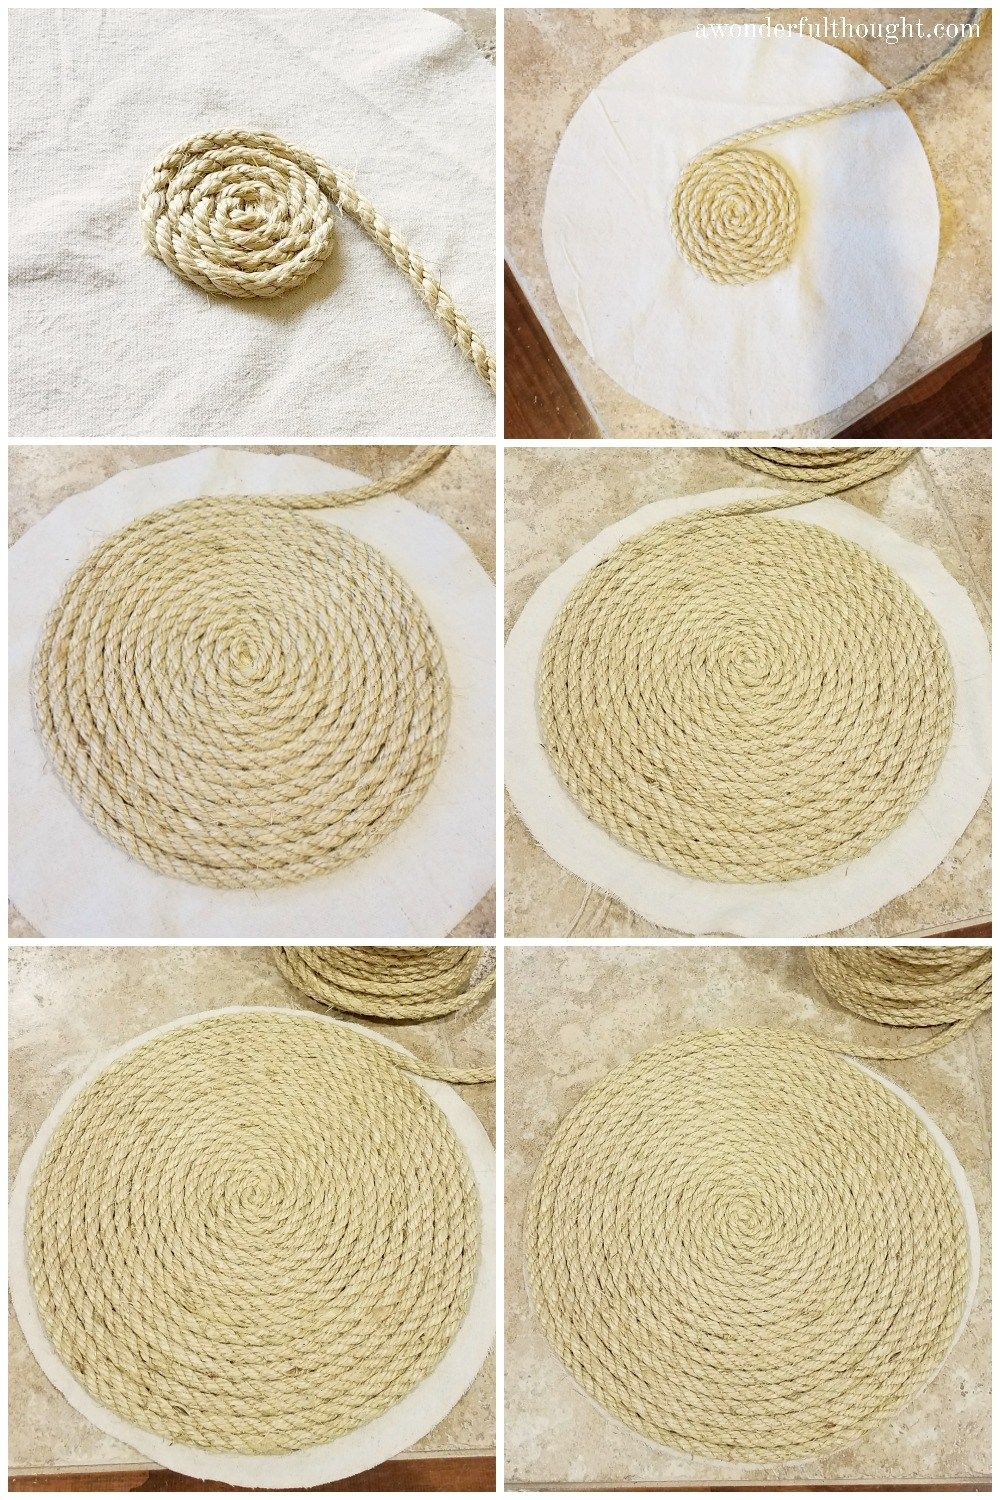 DIY Rope Chargers